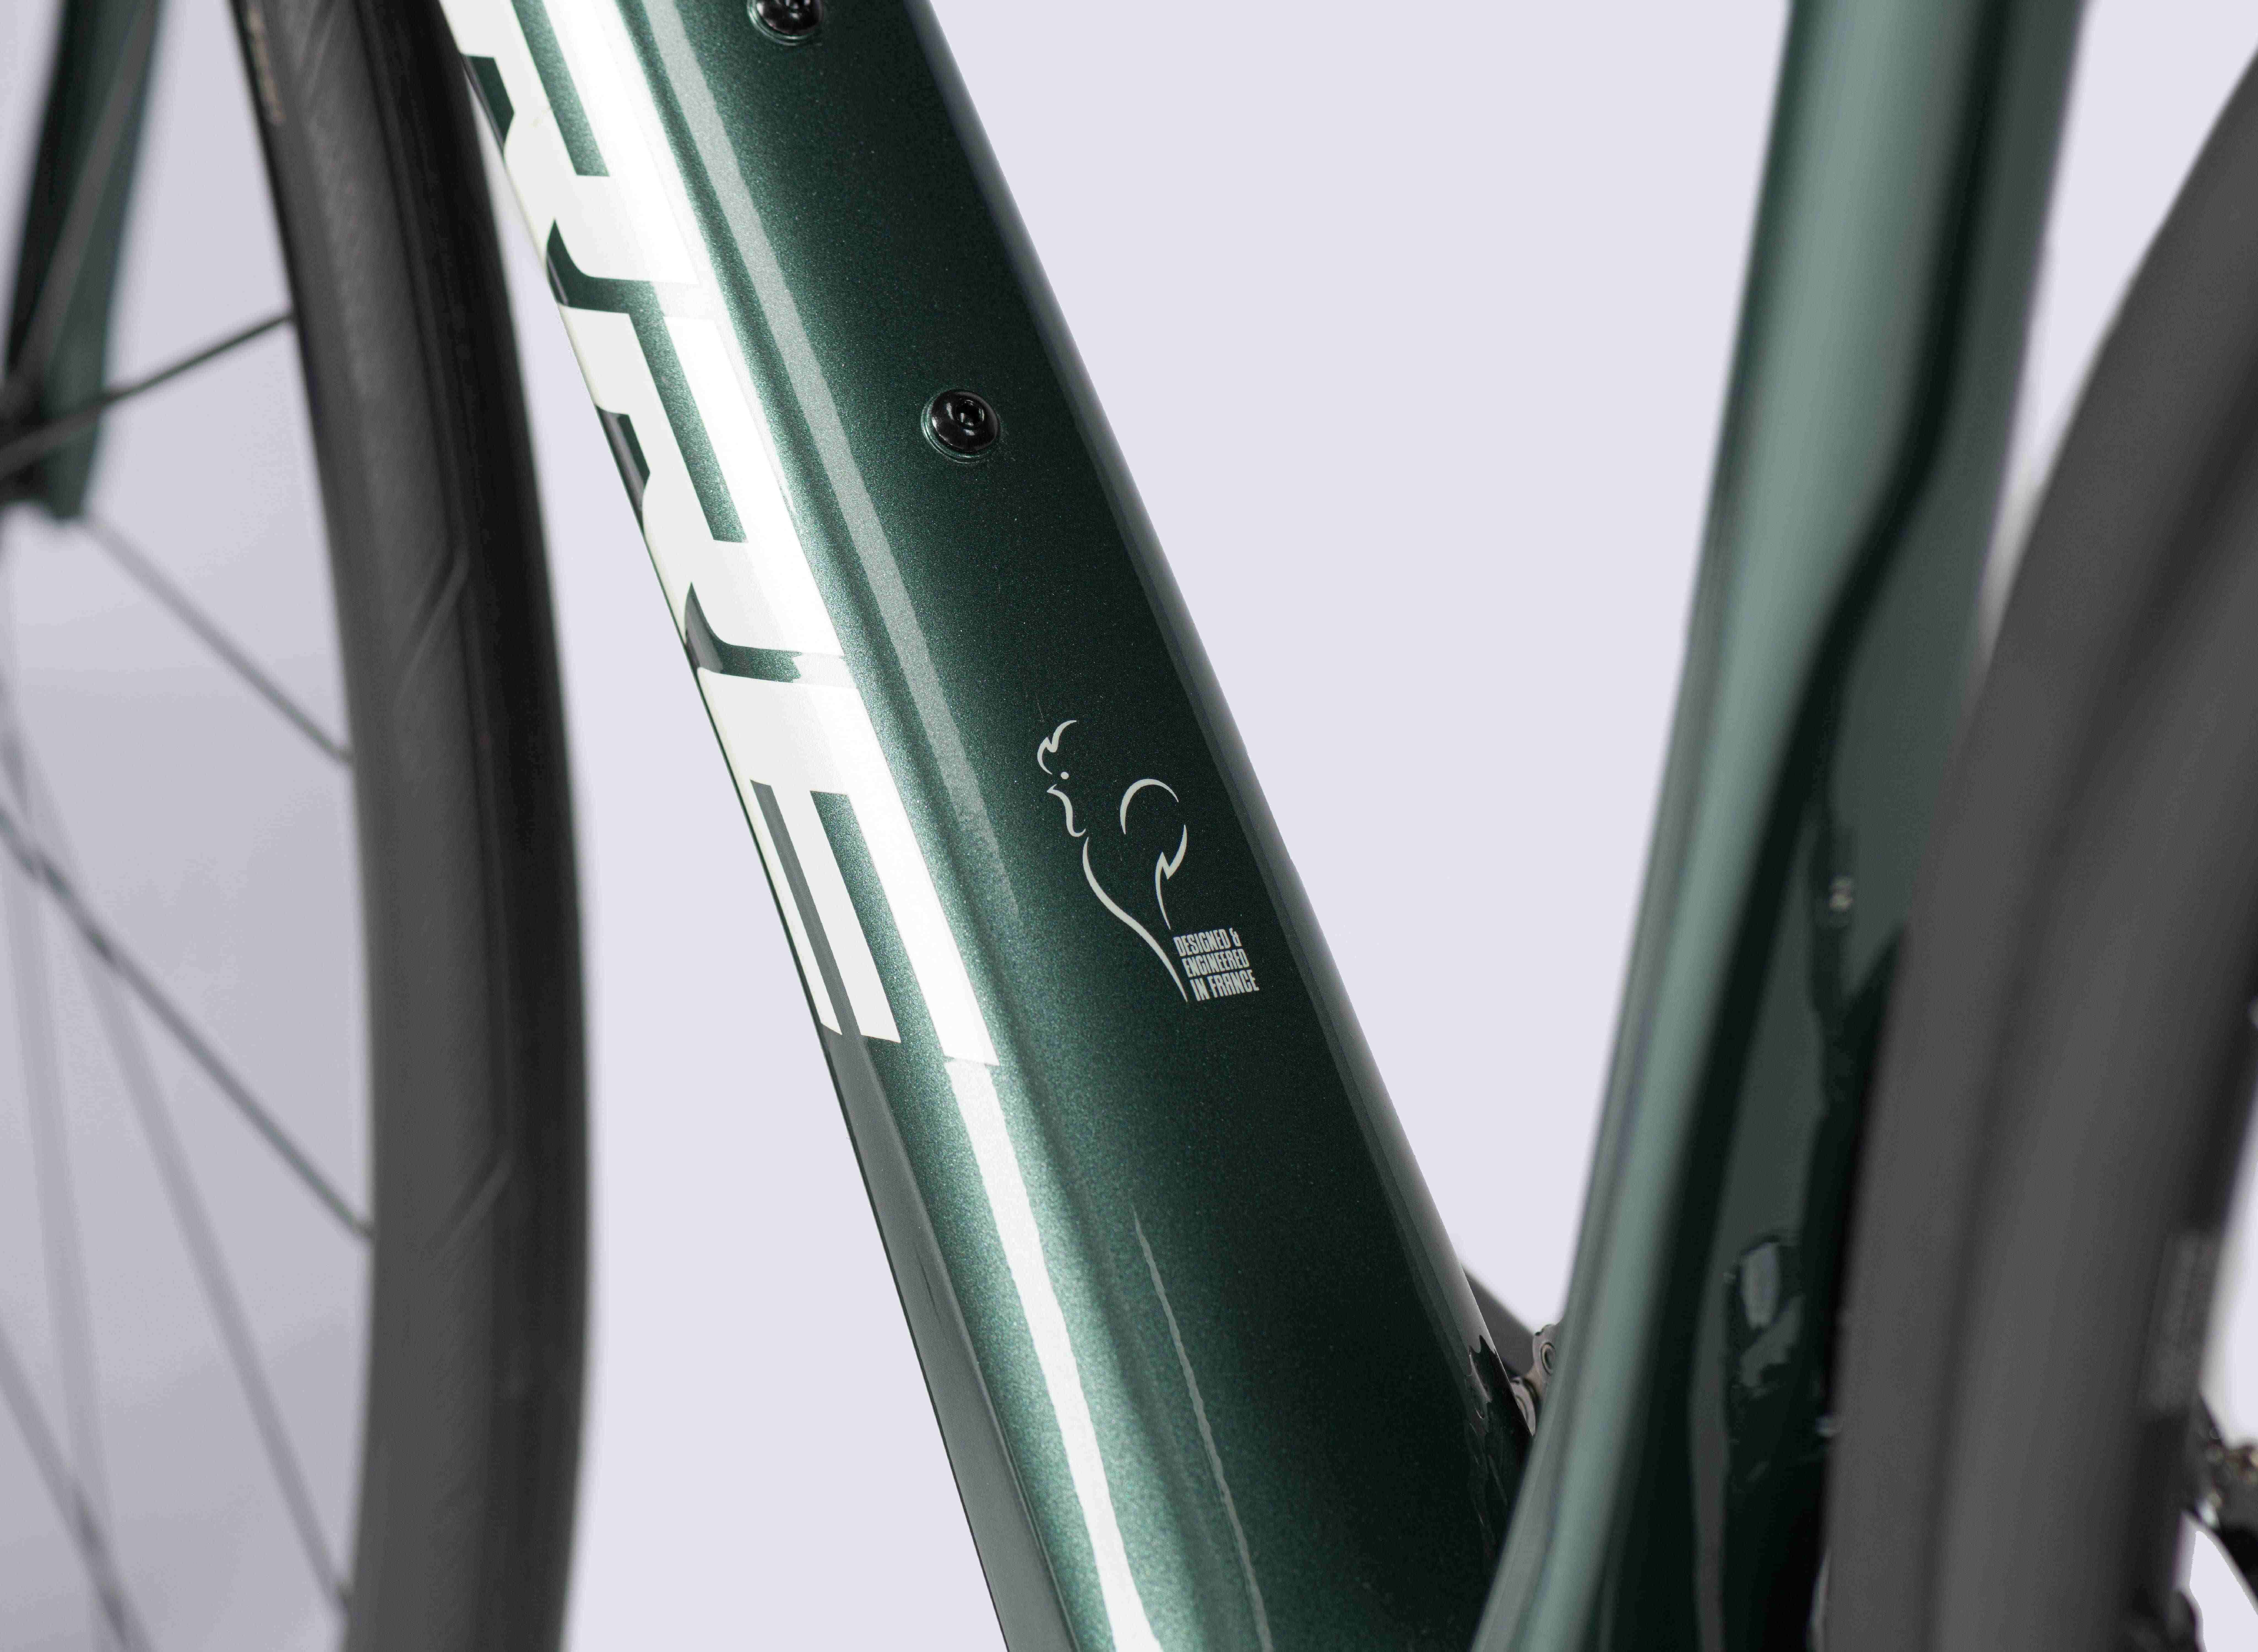 Lapierre Pulsium SAT 6.0 Disc 2021 Endurance Road Bike. Detailed image of bike frame